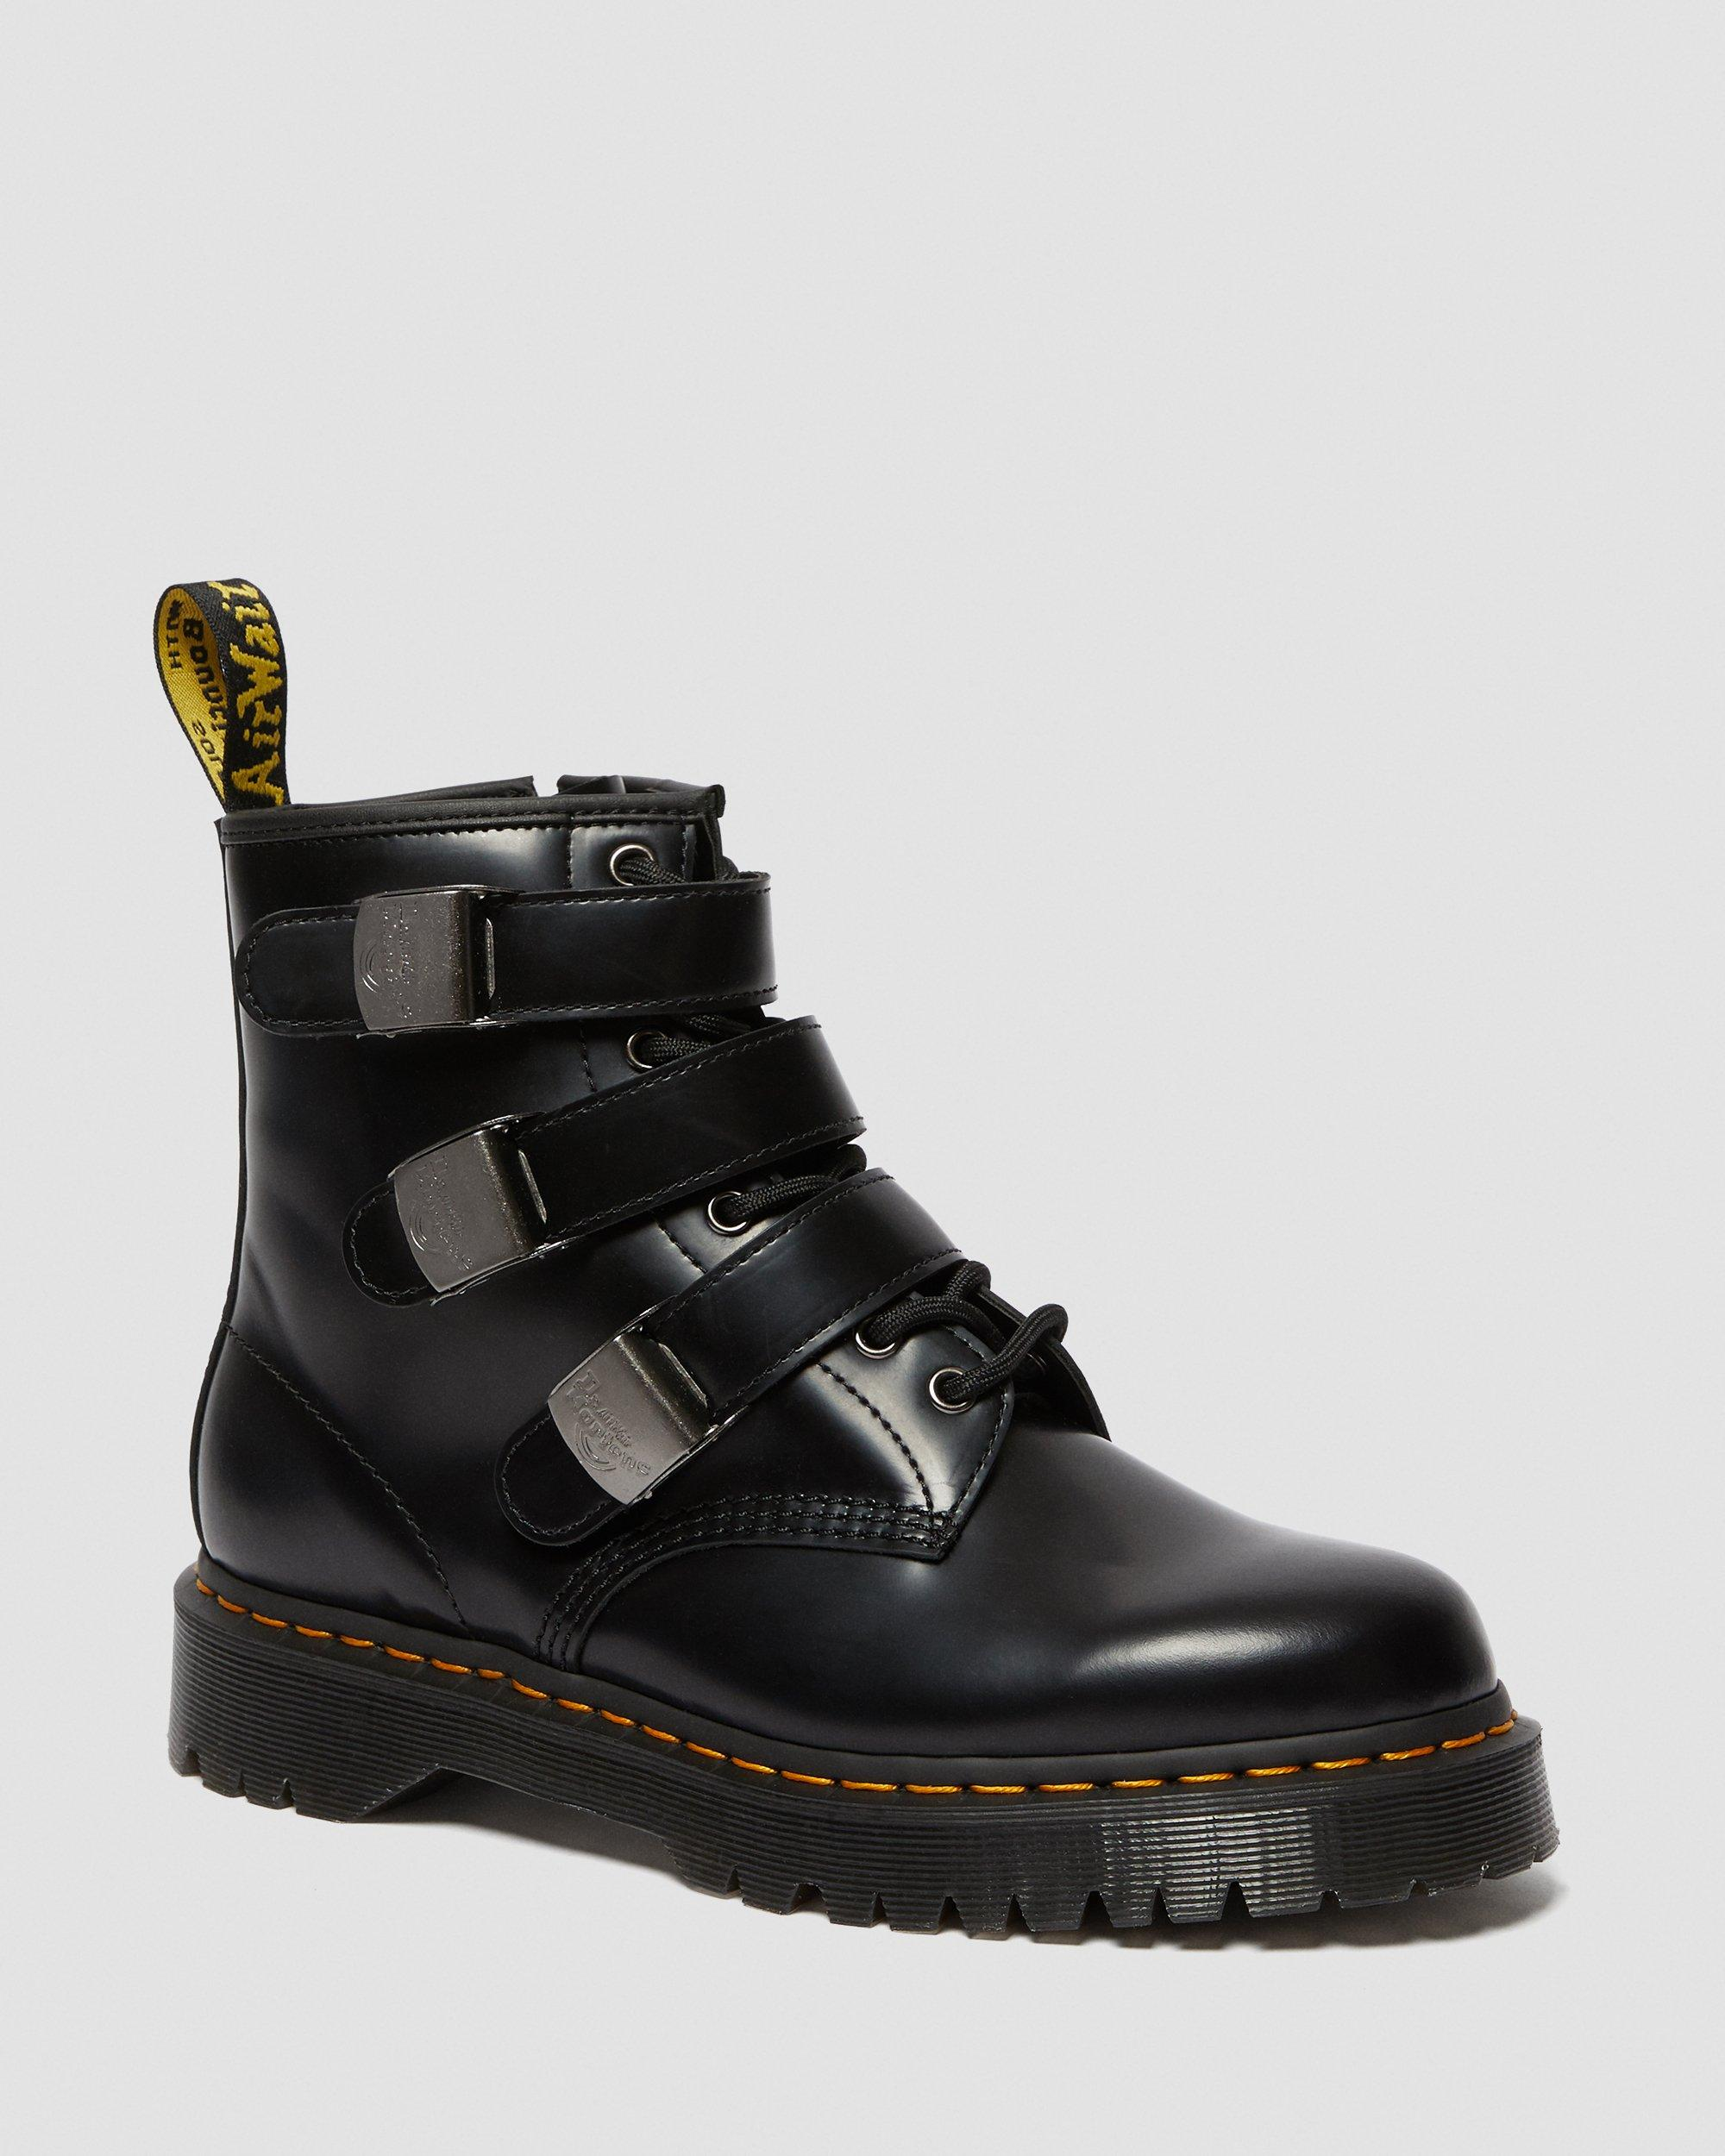 Boys Buckle My Shoe Black Ankle Boots Back to School Slip On Various Sizes